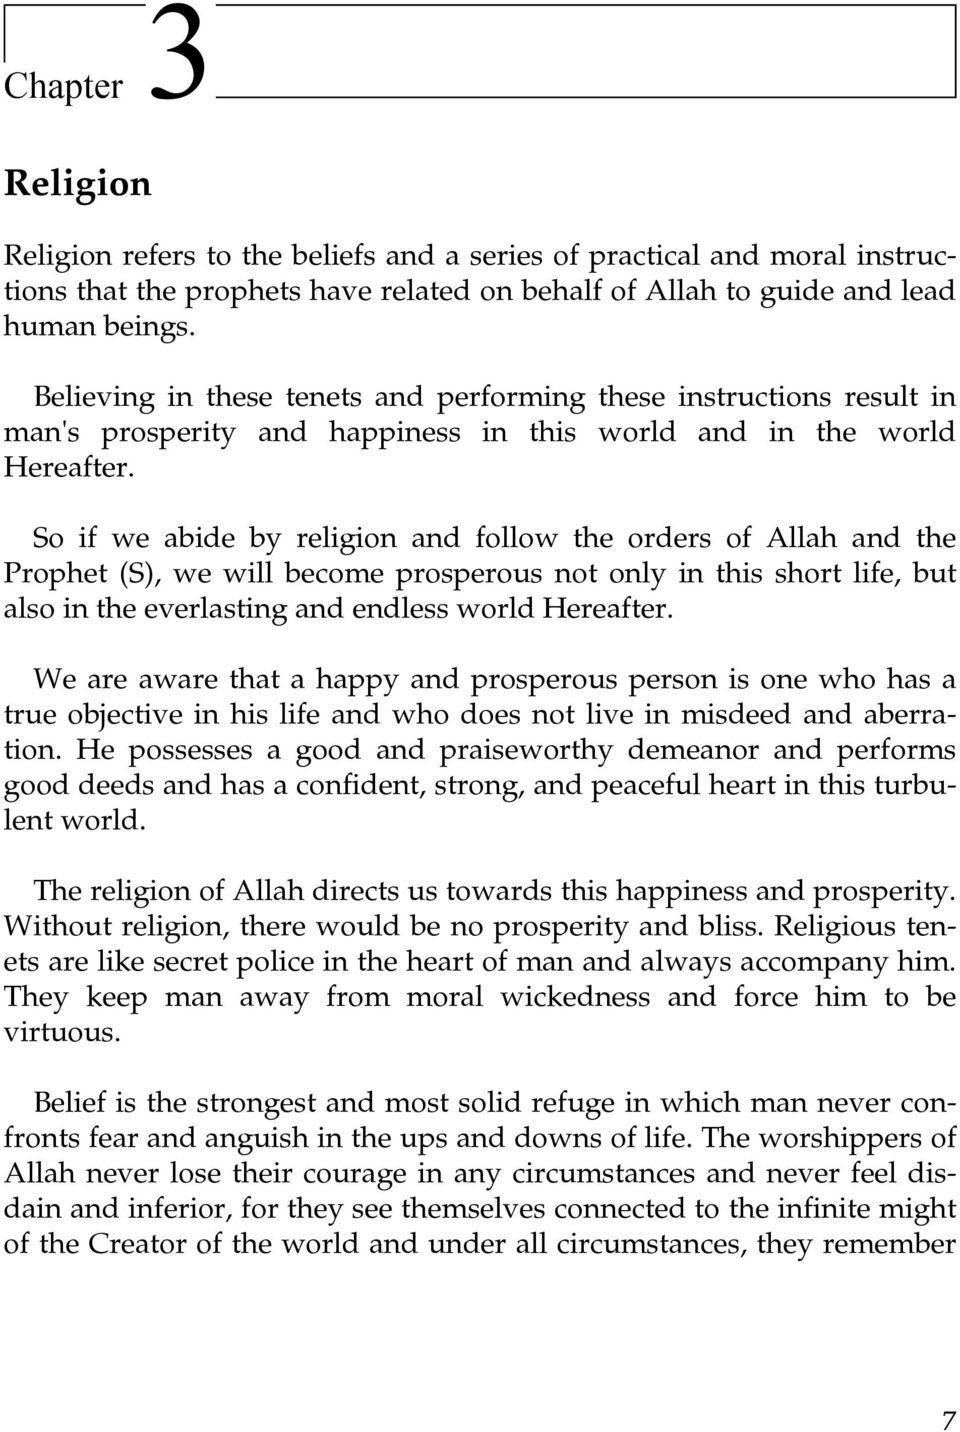 So if we abide by religion and follow the orders of Allah and the Prophet (S), we will become prosperous not only in this short life, but also in the everlasting and endless world Hereafter.